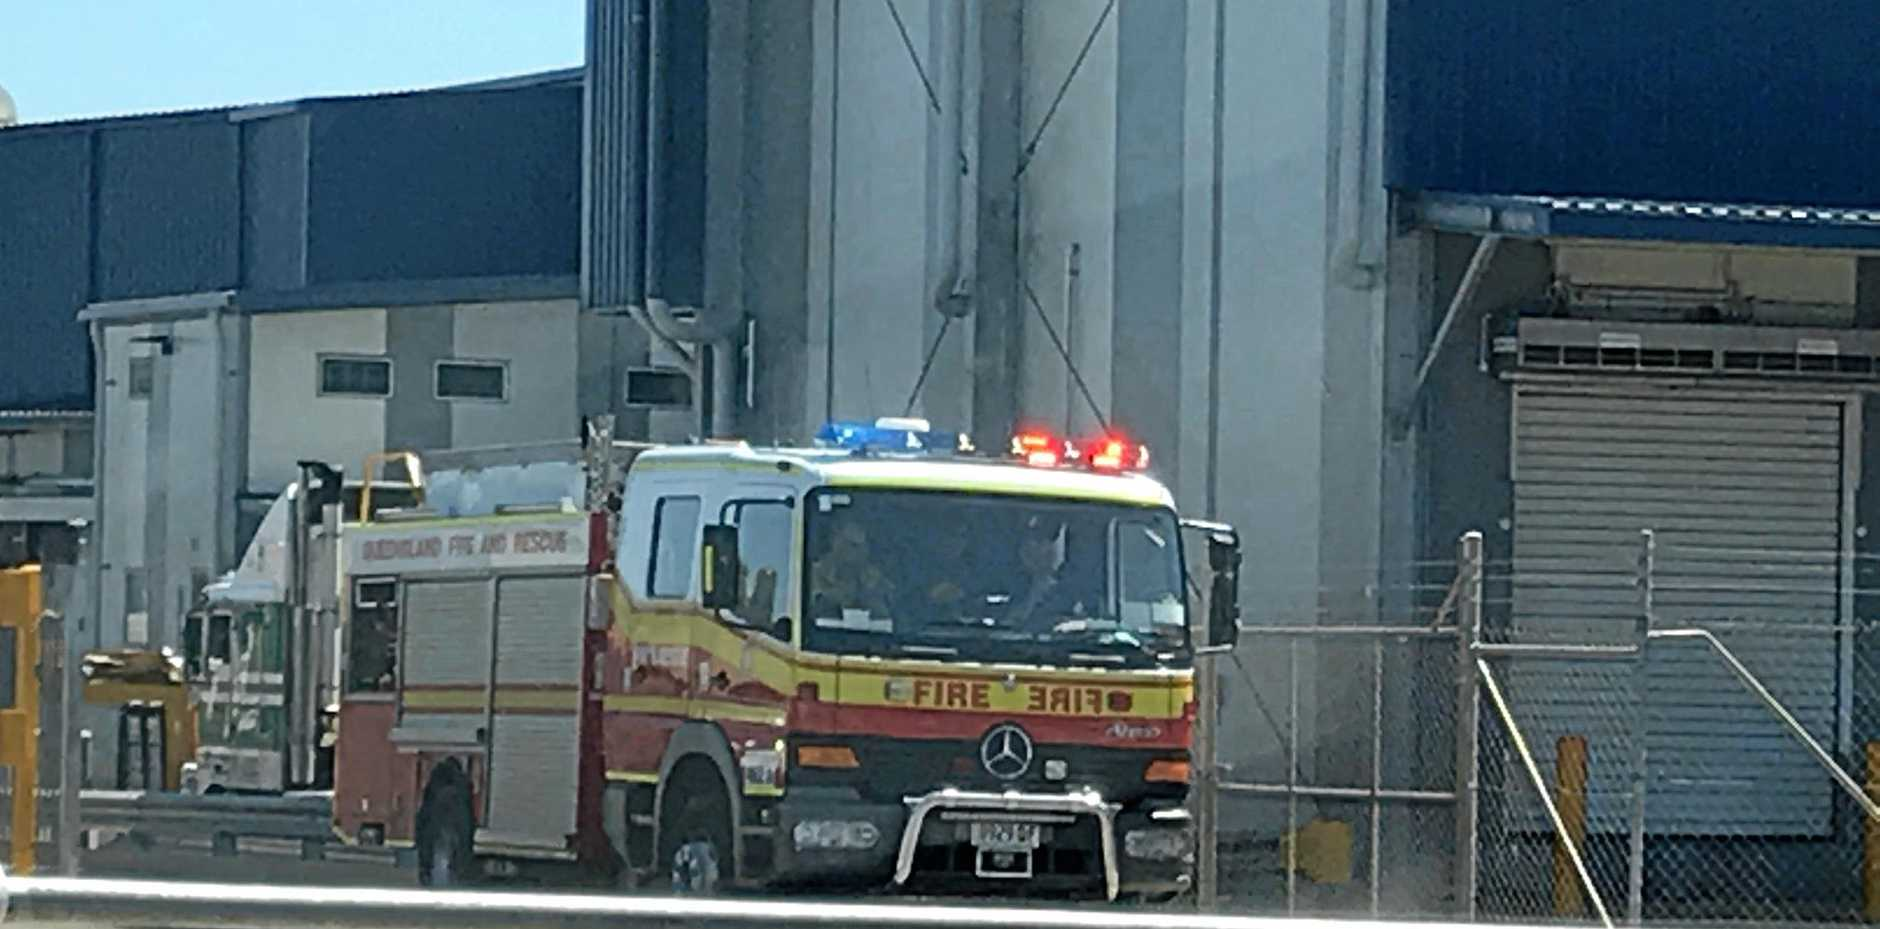 Two fire crews attended Swickers Bacon Factory following activation of smoke alarms.